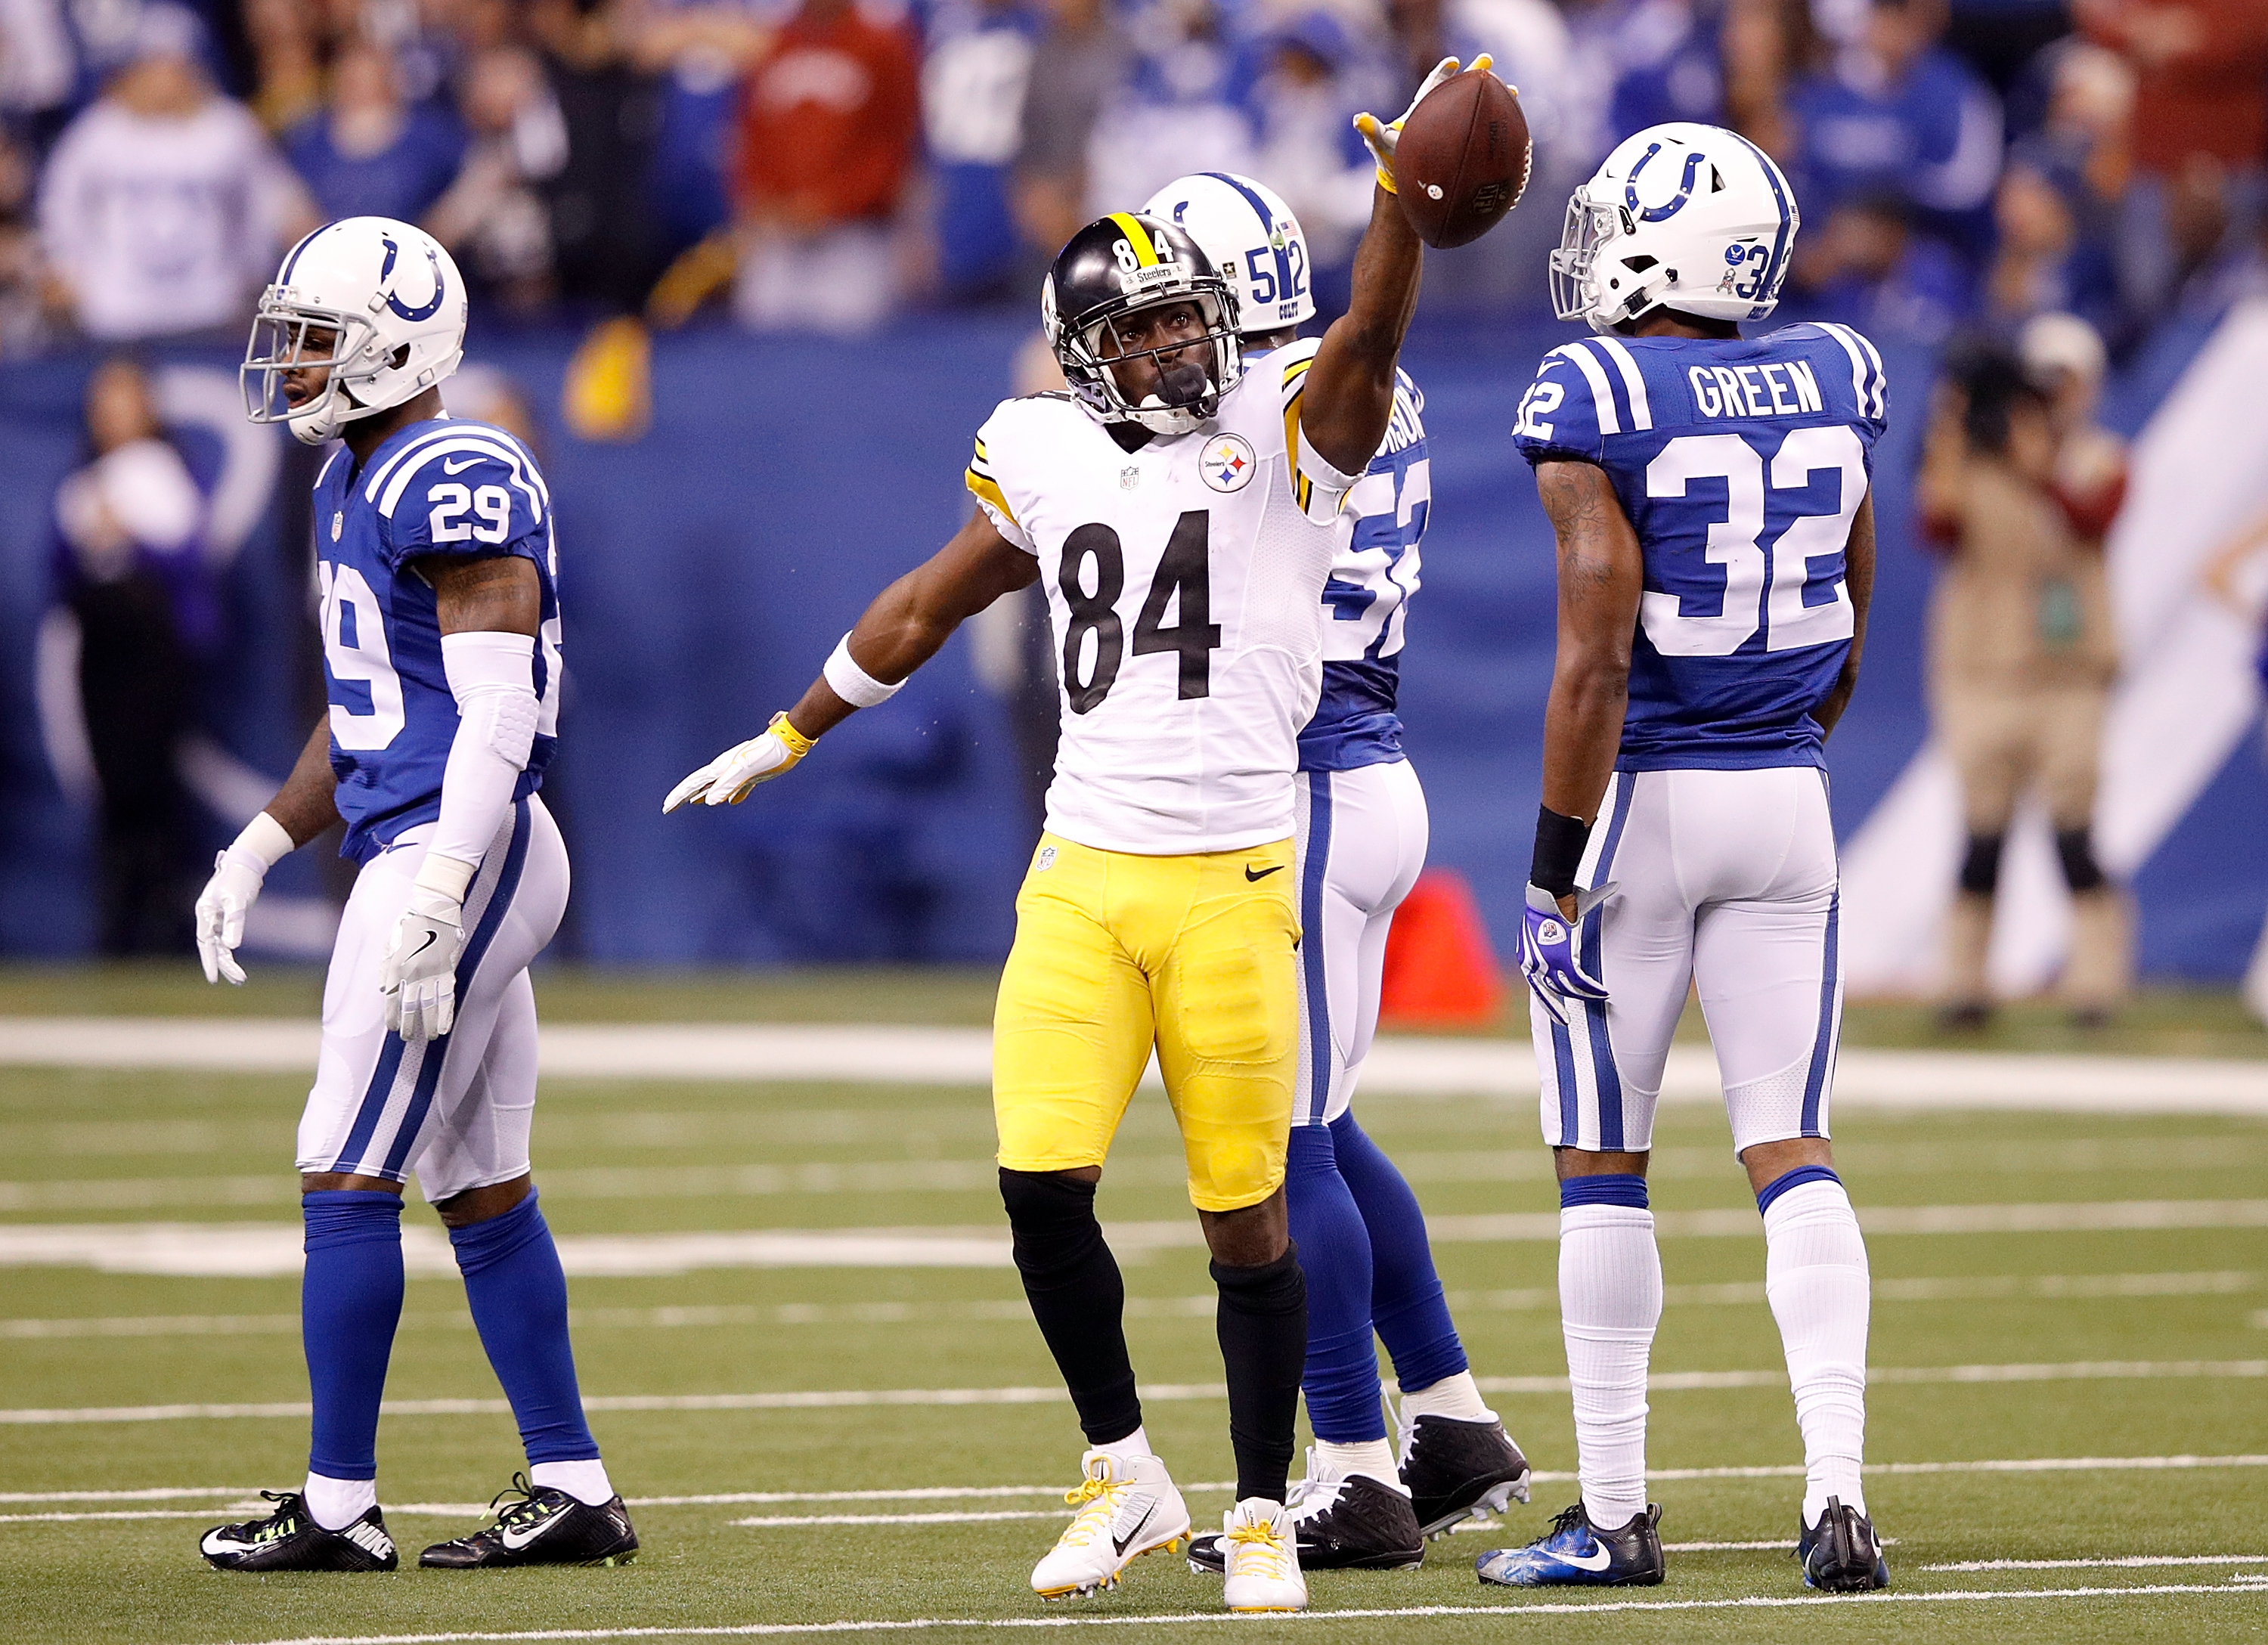 Steelers Coast Against Unlucky Colts 28-7